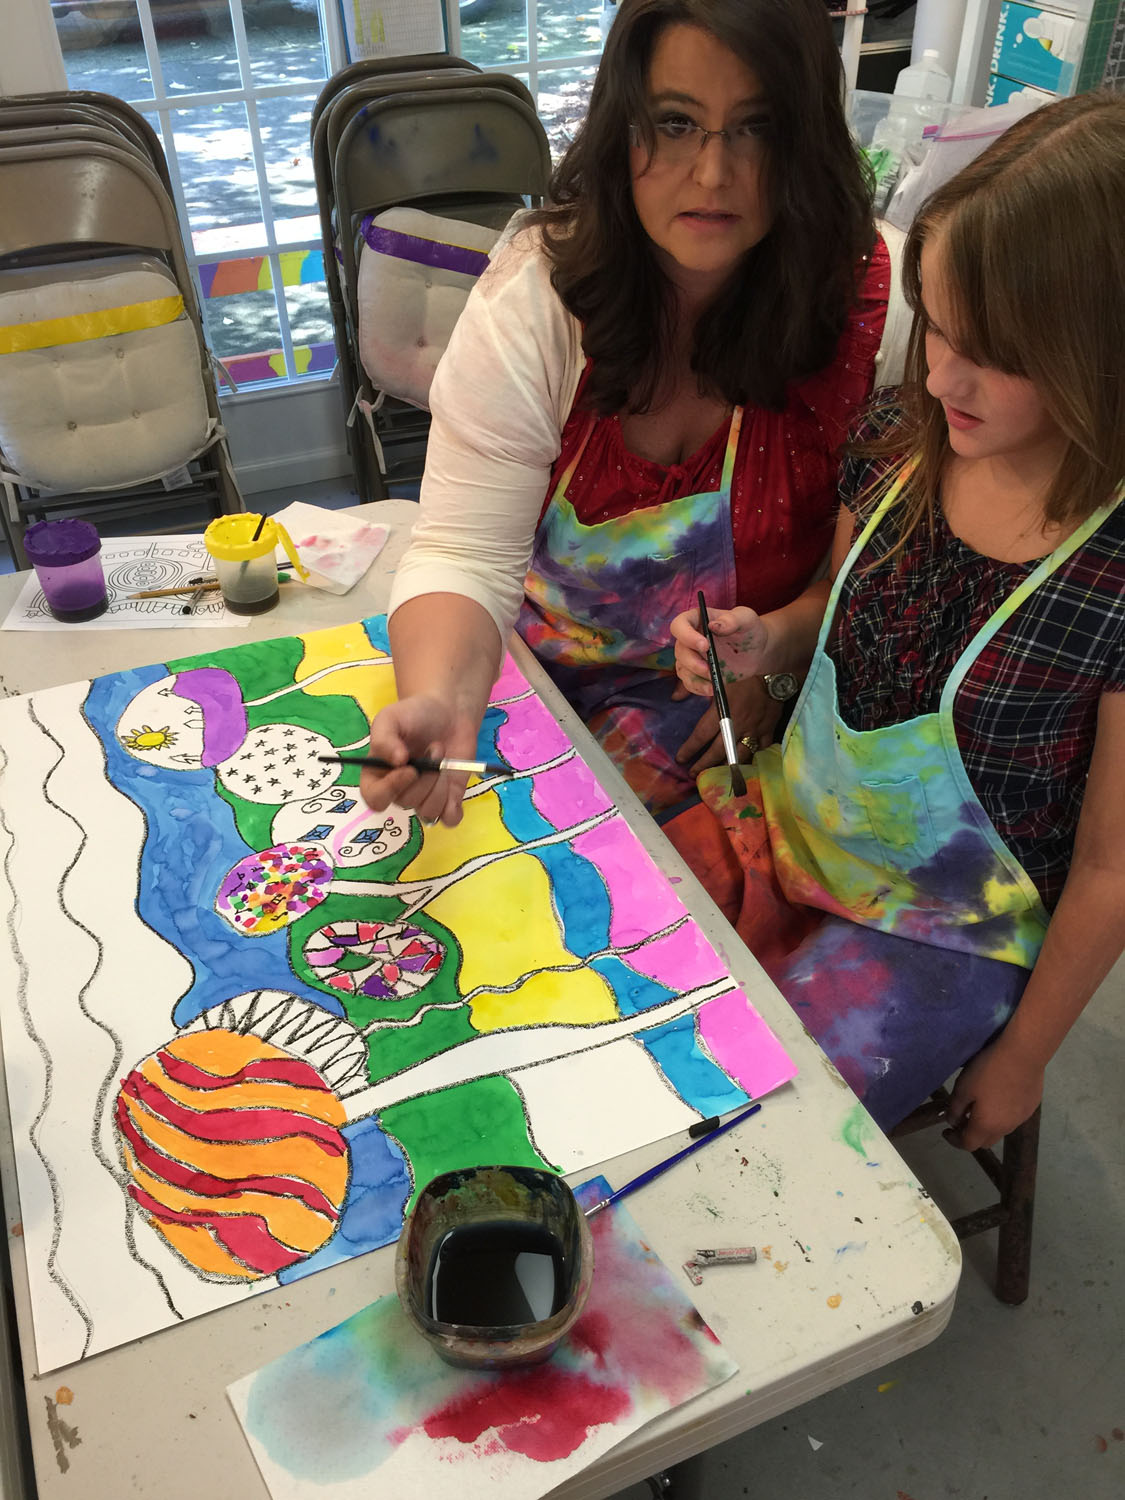 making-art-at-tracey-marshall-studio-greensboro-nc-art-classes-kids-and-adults-IMG_0029.jpg